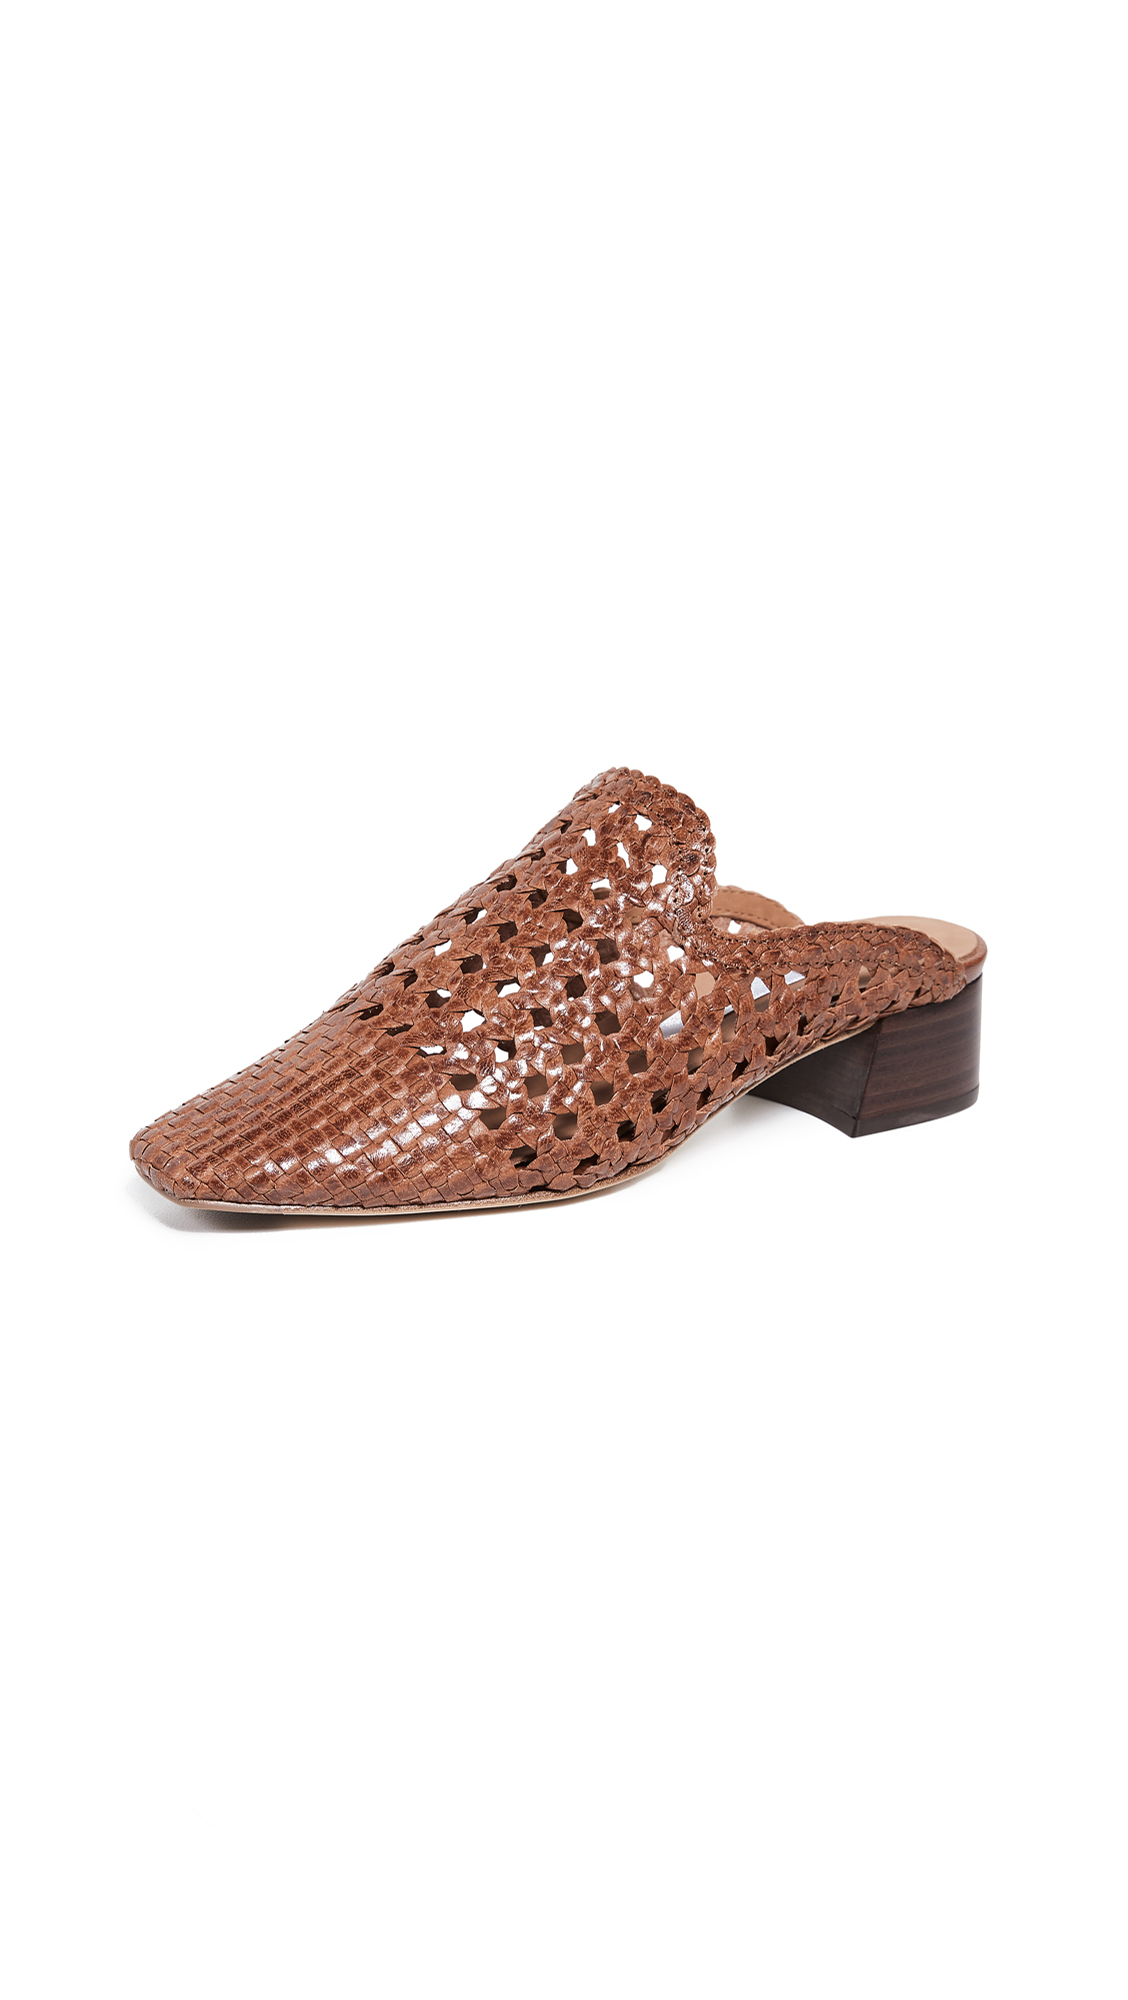 Miista Ida Block Heel Mules - Brown